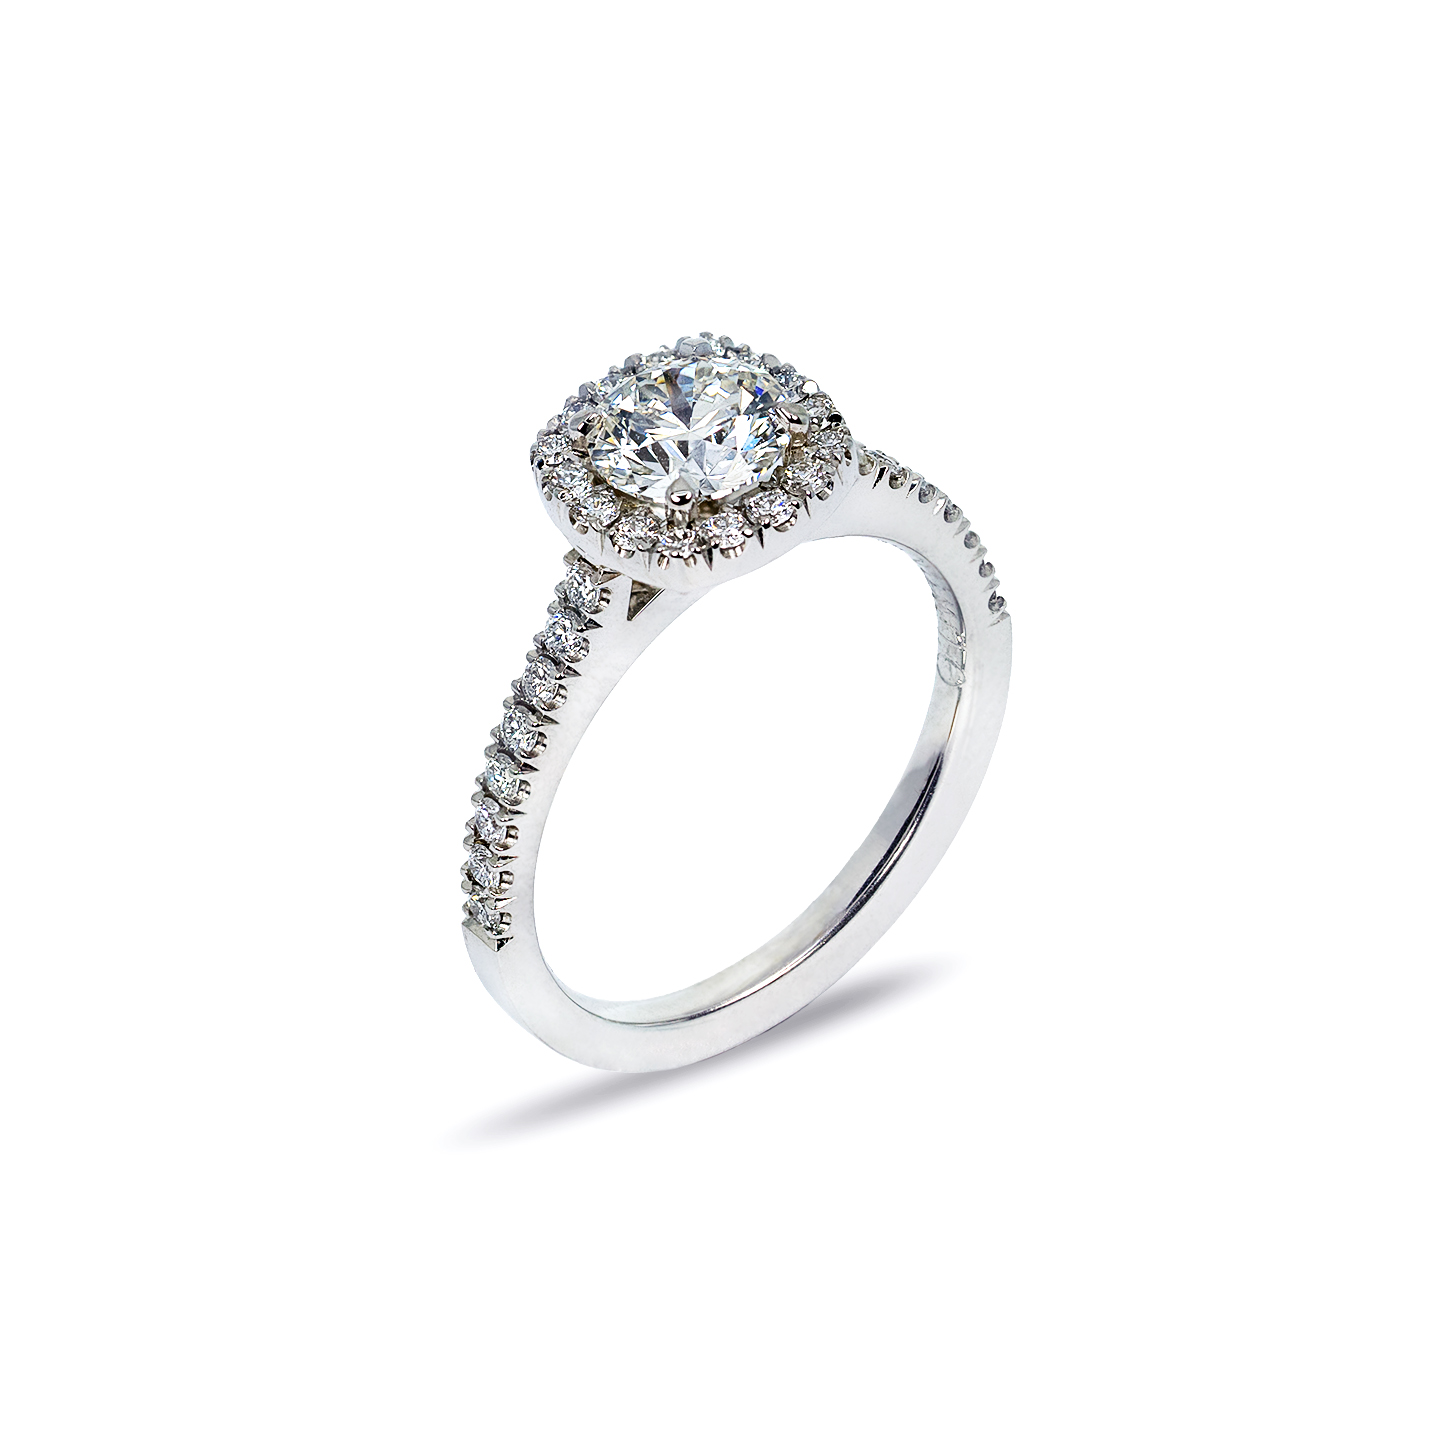 FLORENCE Engagement Ring at Murphy Jewellers of Kilkenny